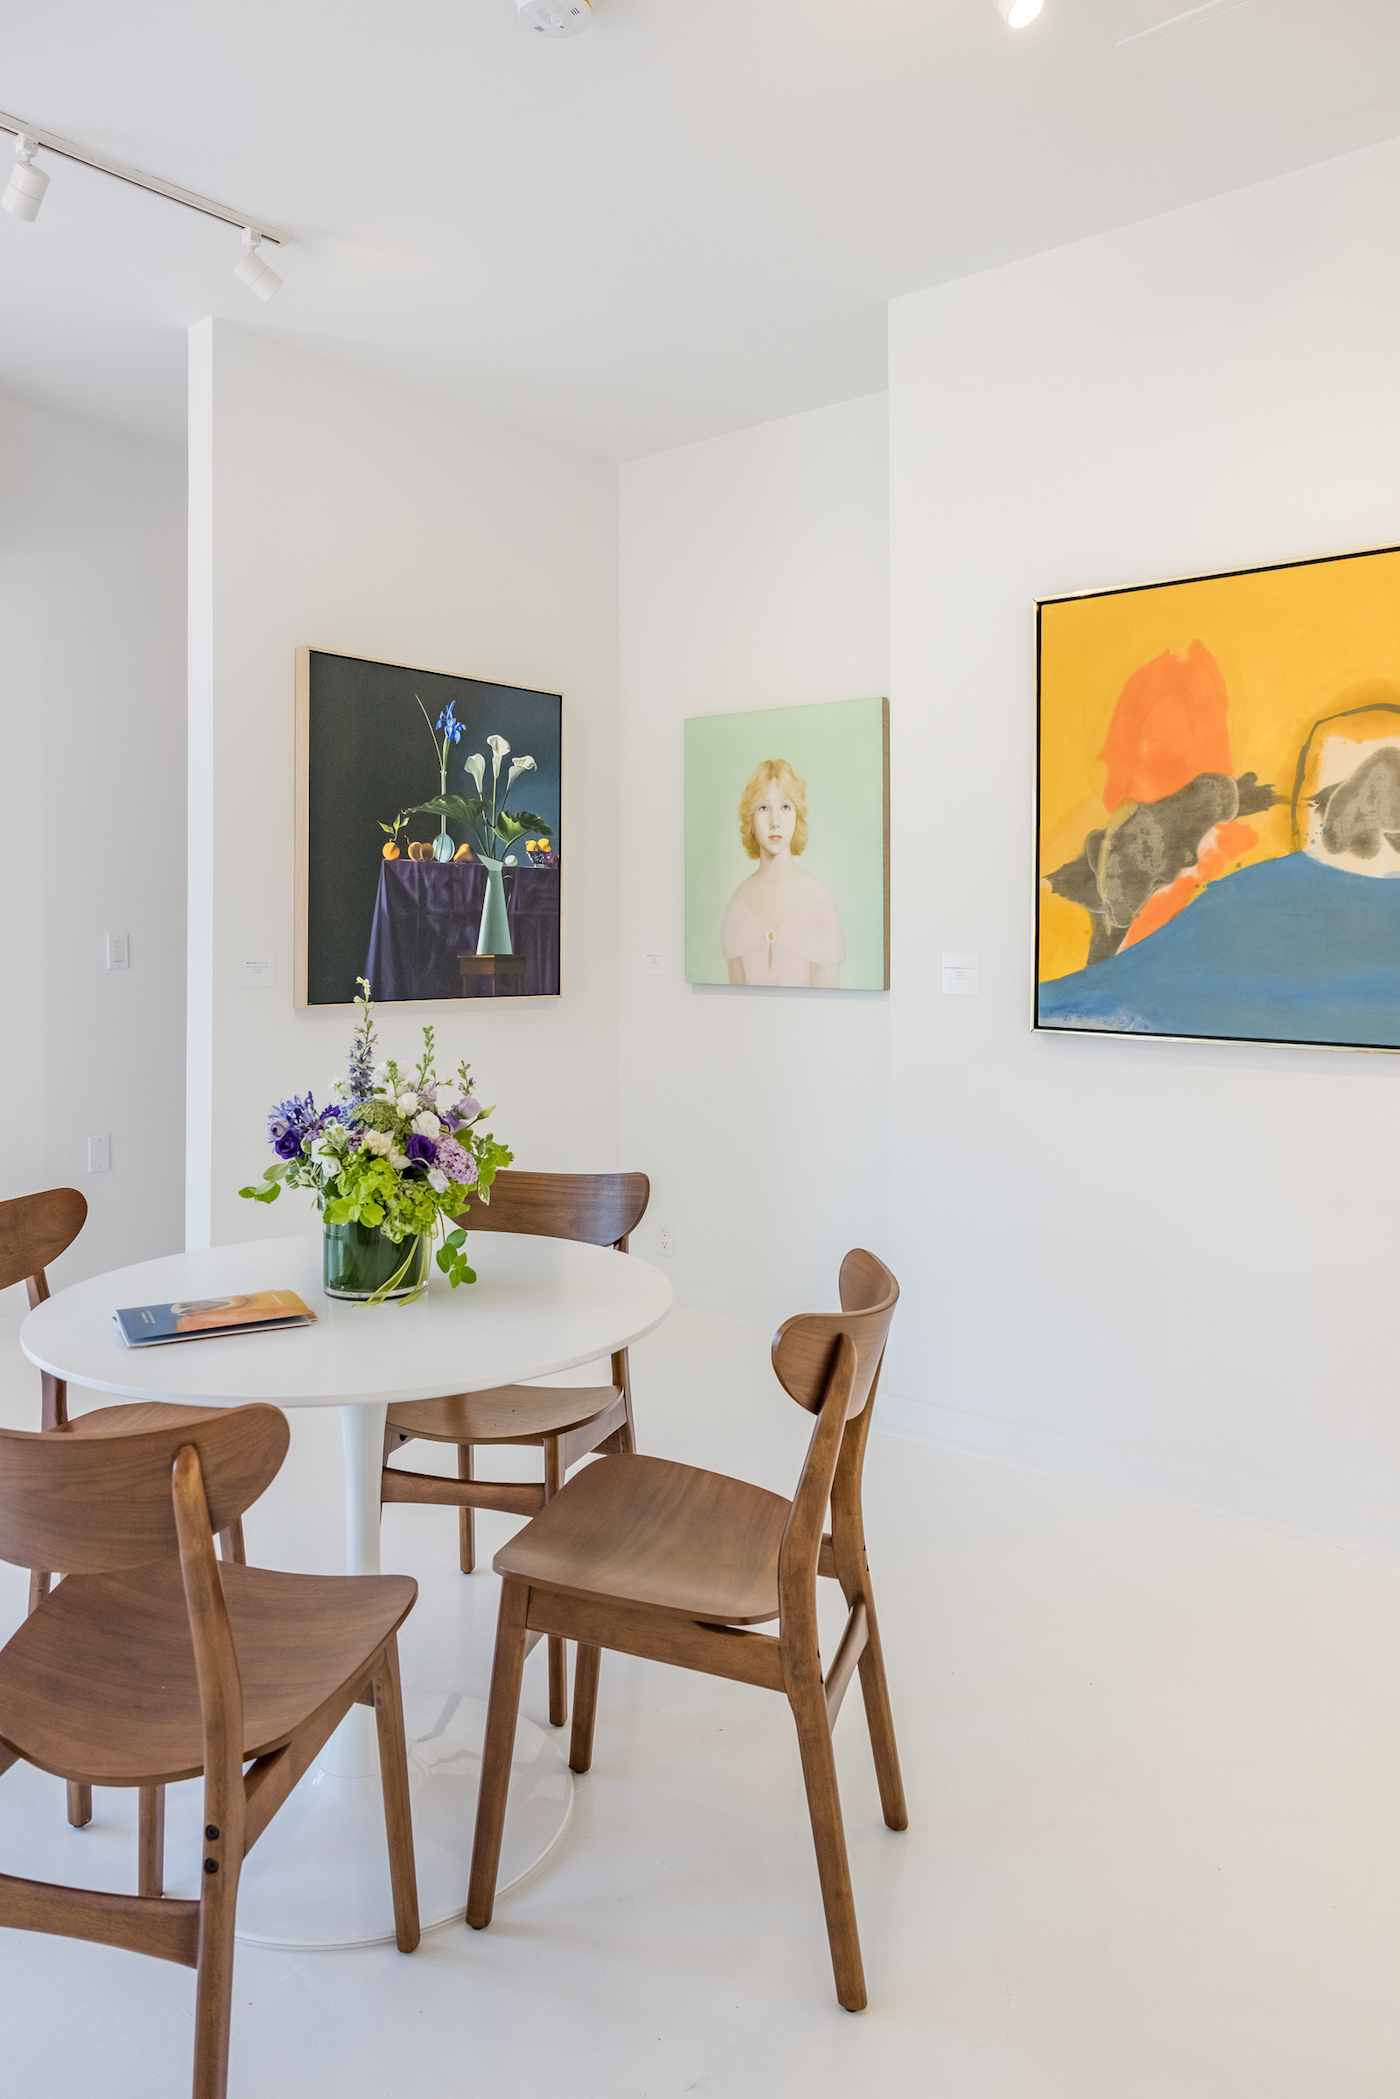 Art gallery space with table and chairs